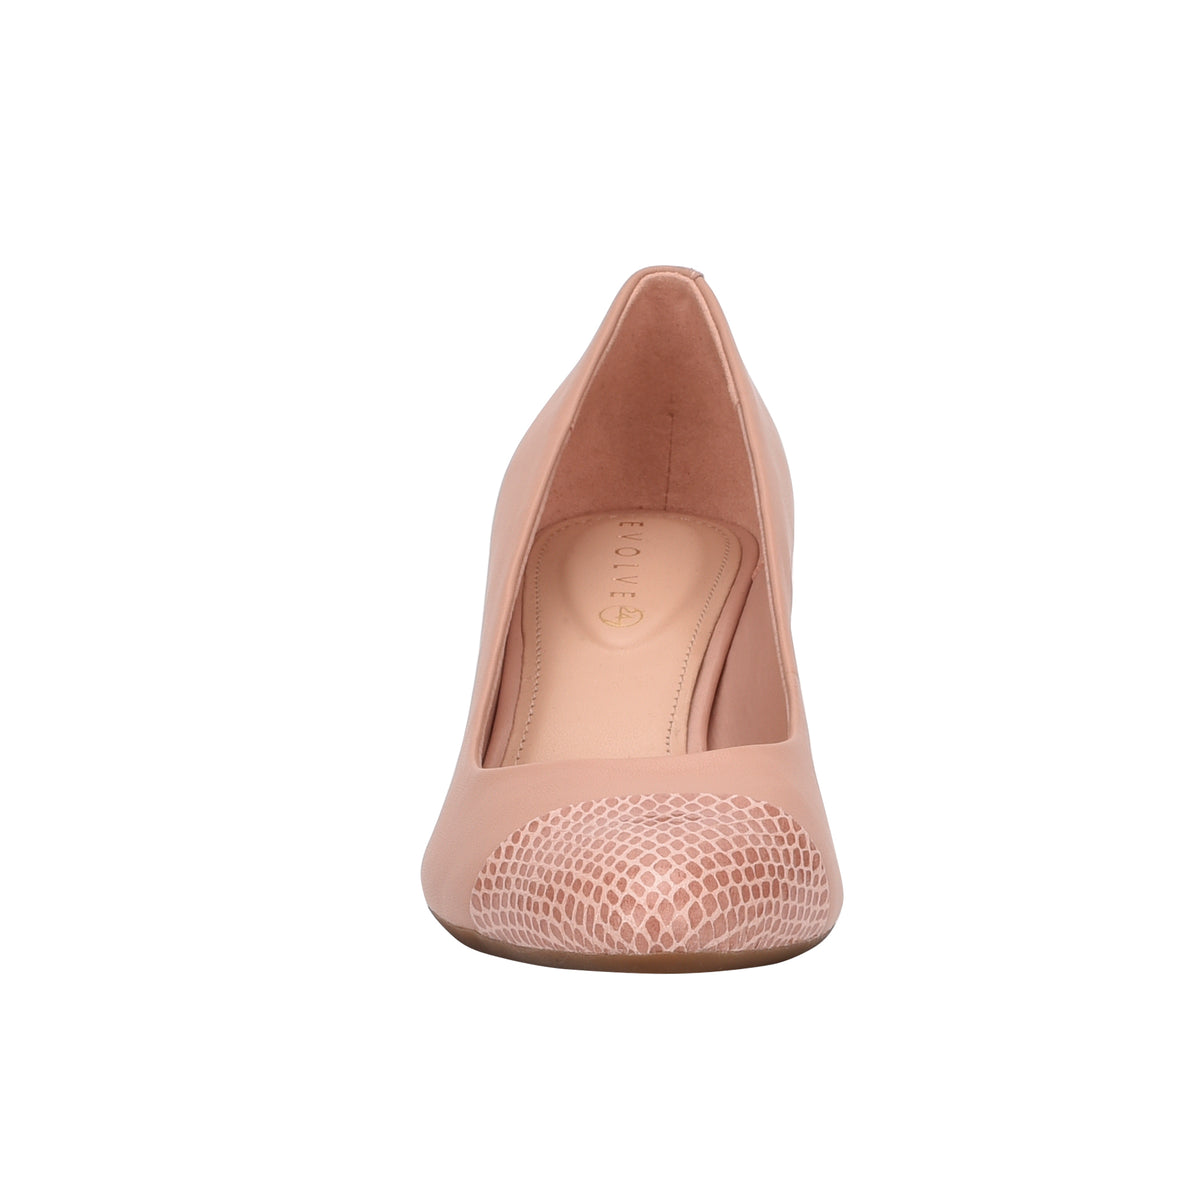 rainie-pumps-in-pink-multi-leather